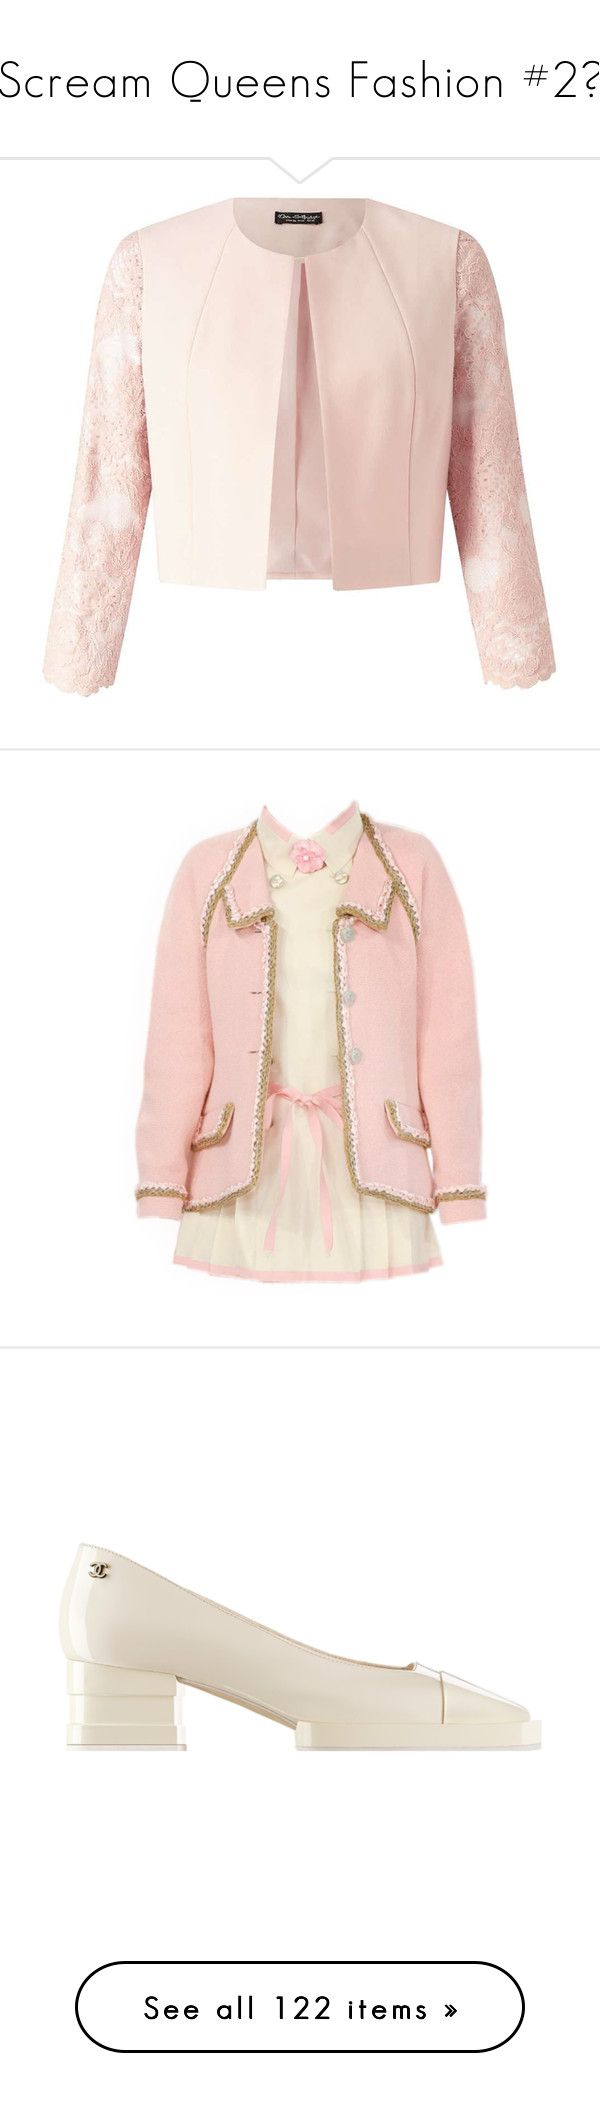 """Scream Queens Fashion #2♡"" by kaylalovesowls ❤ liked on Polyvore featuring outerwear, jackets, coats, coats & jackets, blush, miss selfridge, lace jacket, pink lace jacket, pink jacket and dresses"